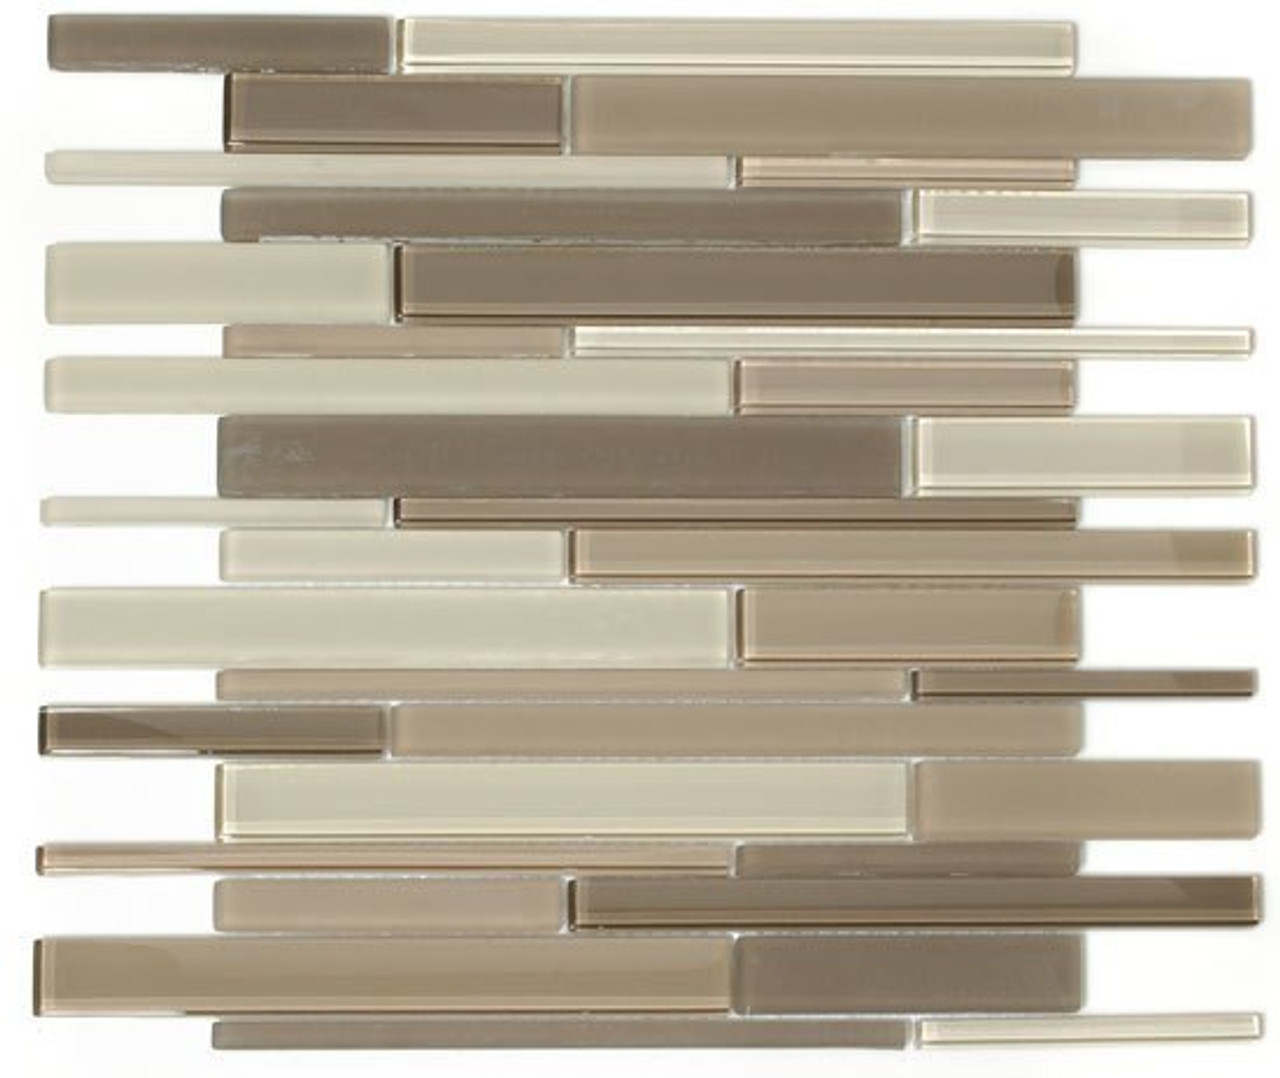 Bella Glass Tiles Cane Series Blend Glass Tiles CNB31 Creek Bed